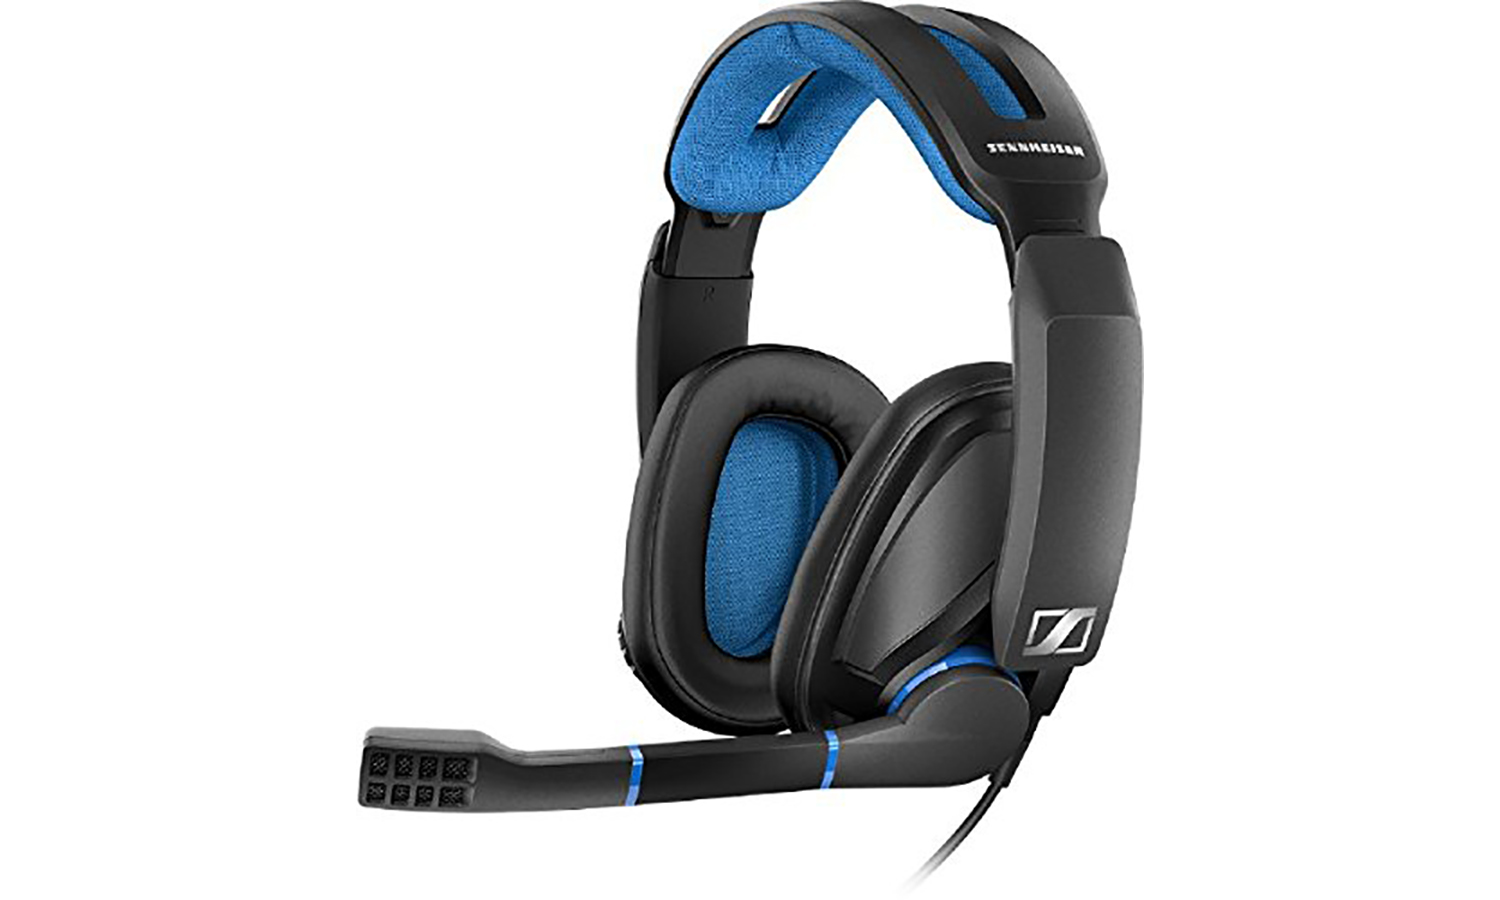 Sennheiser GSP 300 Review ― Plain and Simple (But Not Bad